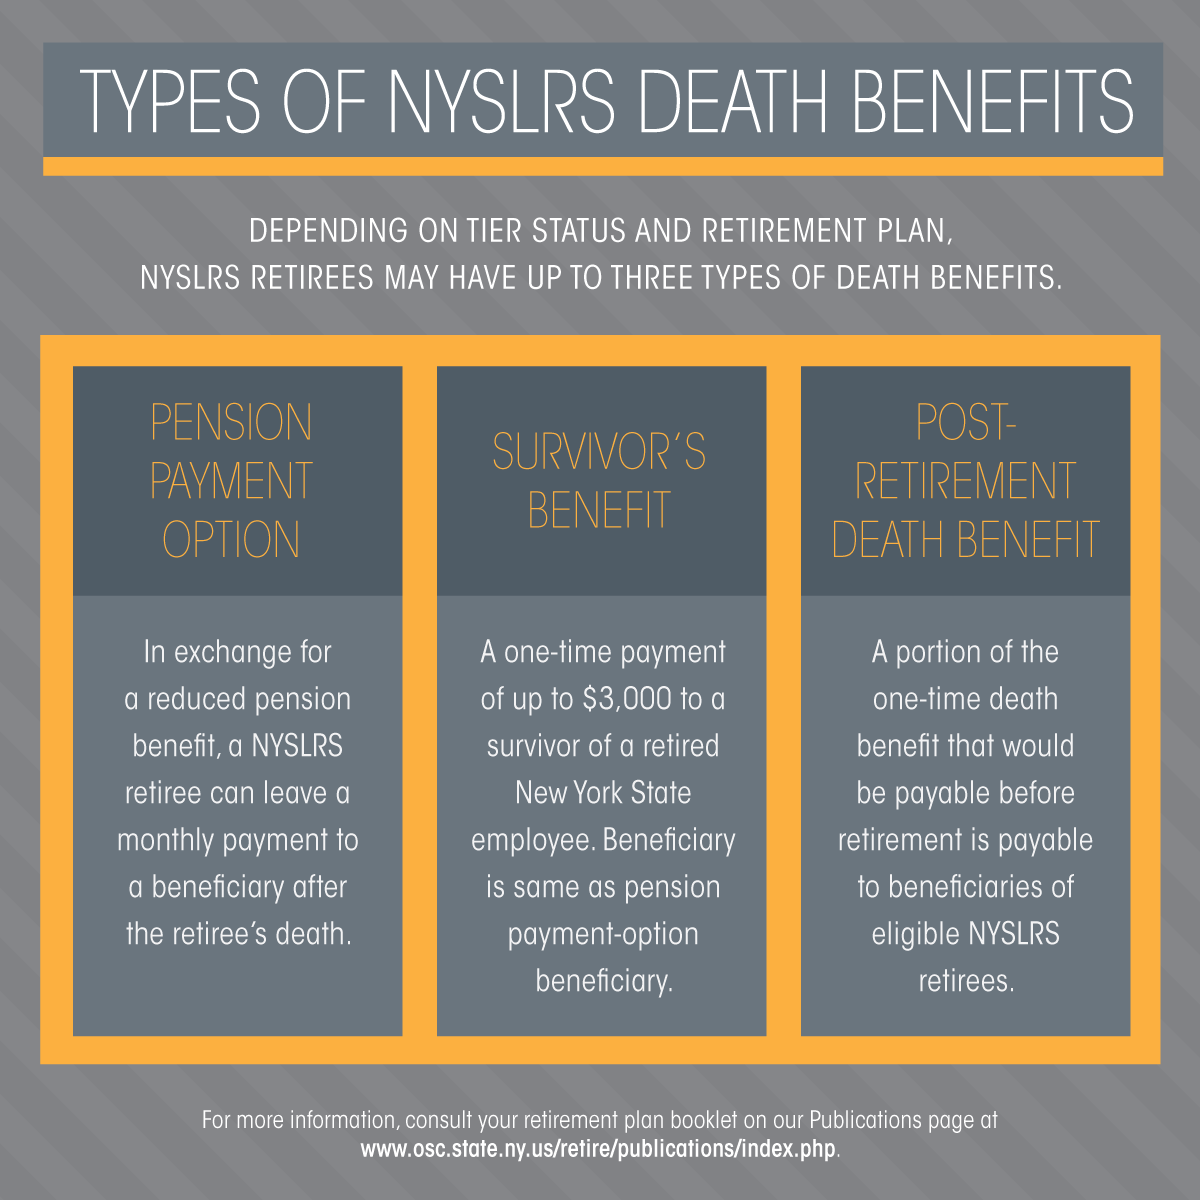 NYSLRS retirees may have up to three types of death benefits that could provide a benefit for a beneficiary: pension payment option, survivor's benefit, and post-retirement death benefit.